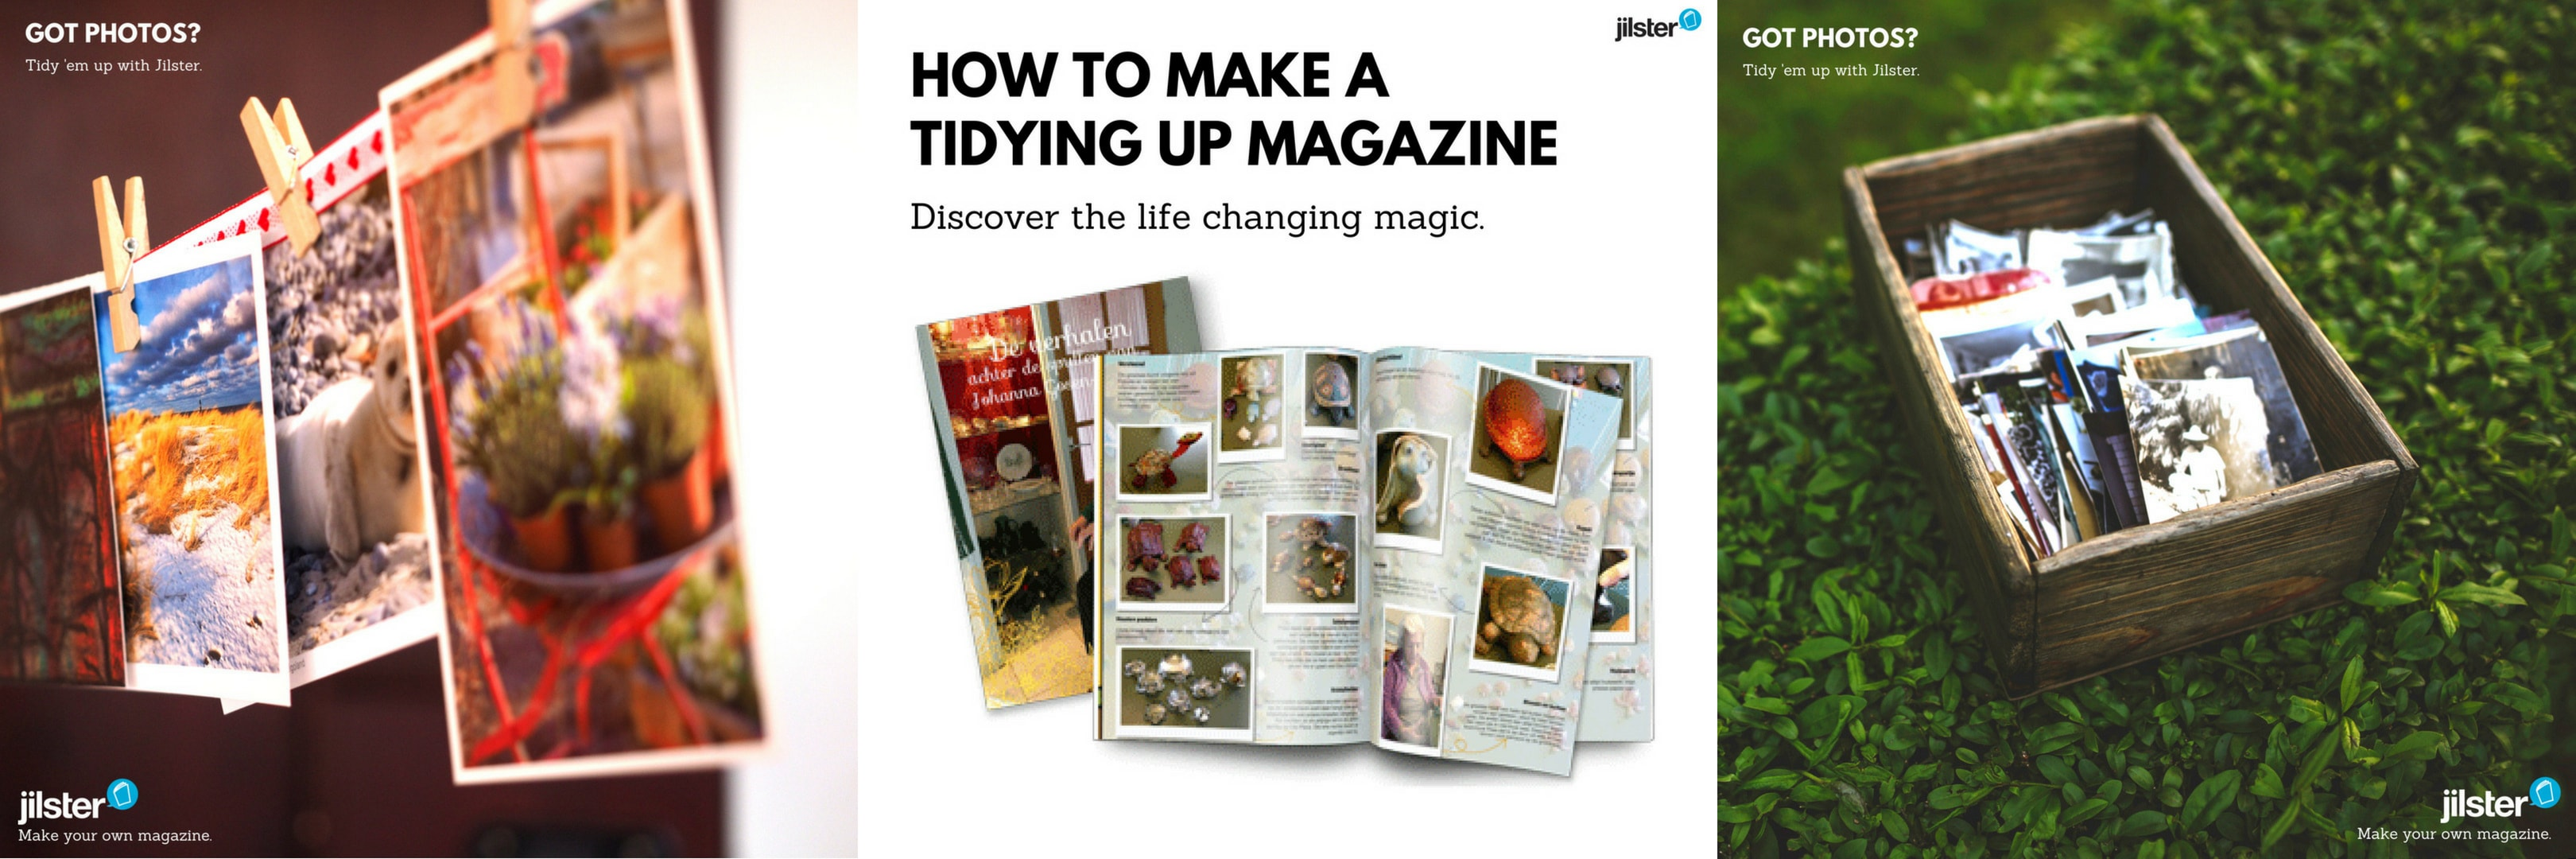 instagram tidy up magazine